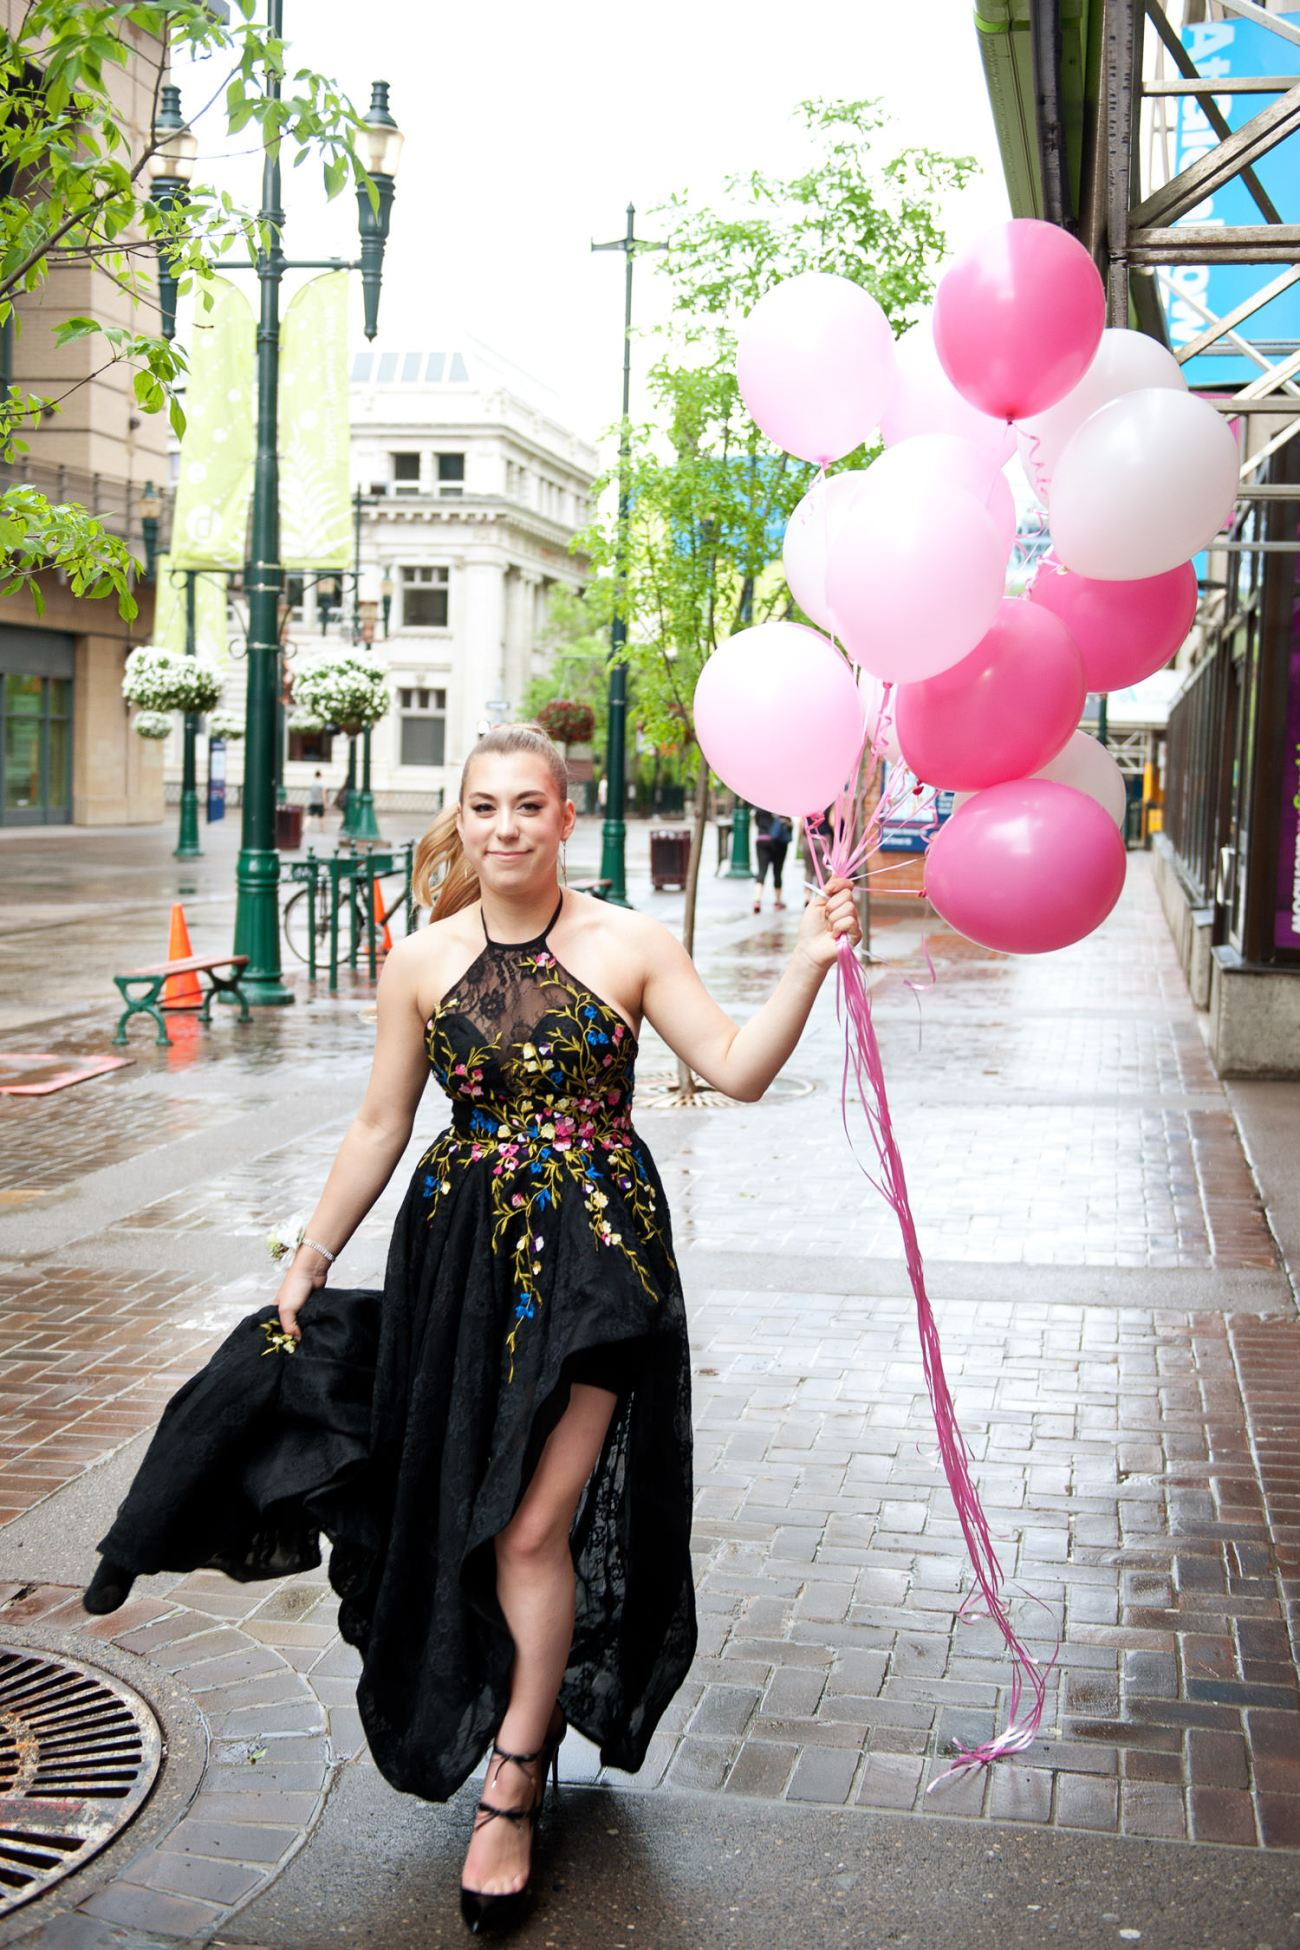 graduate carrying pink balloons on the way to her grad captured by Tara Whittaker Photography